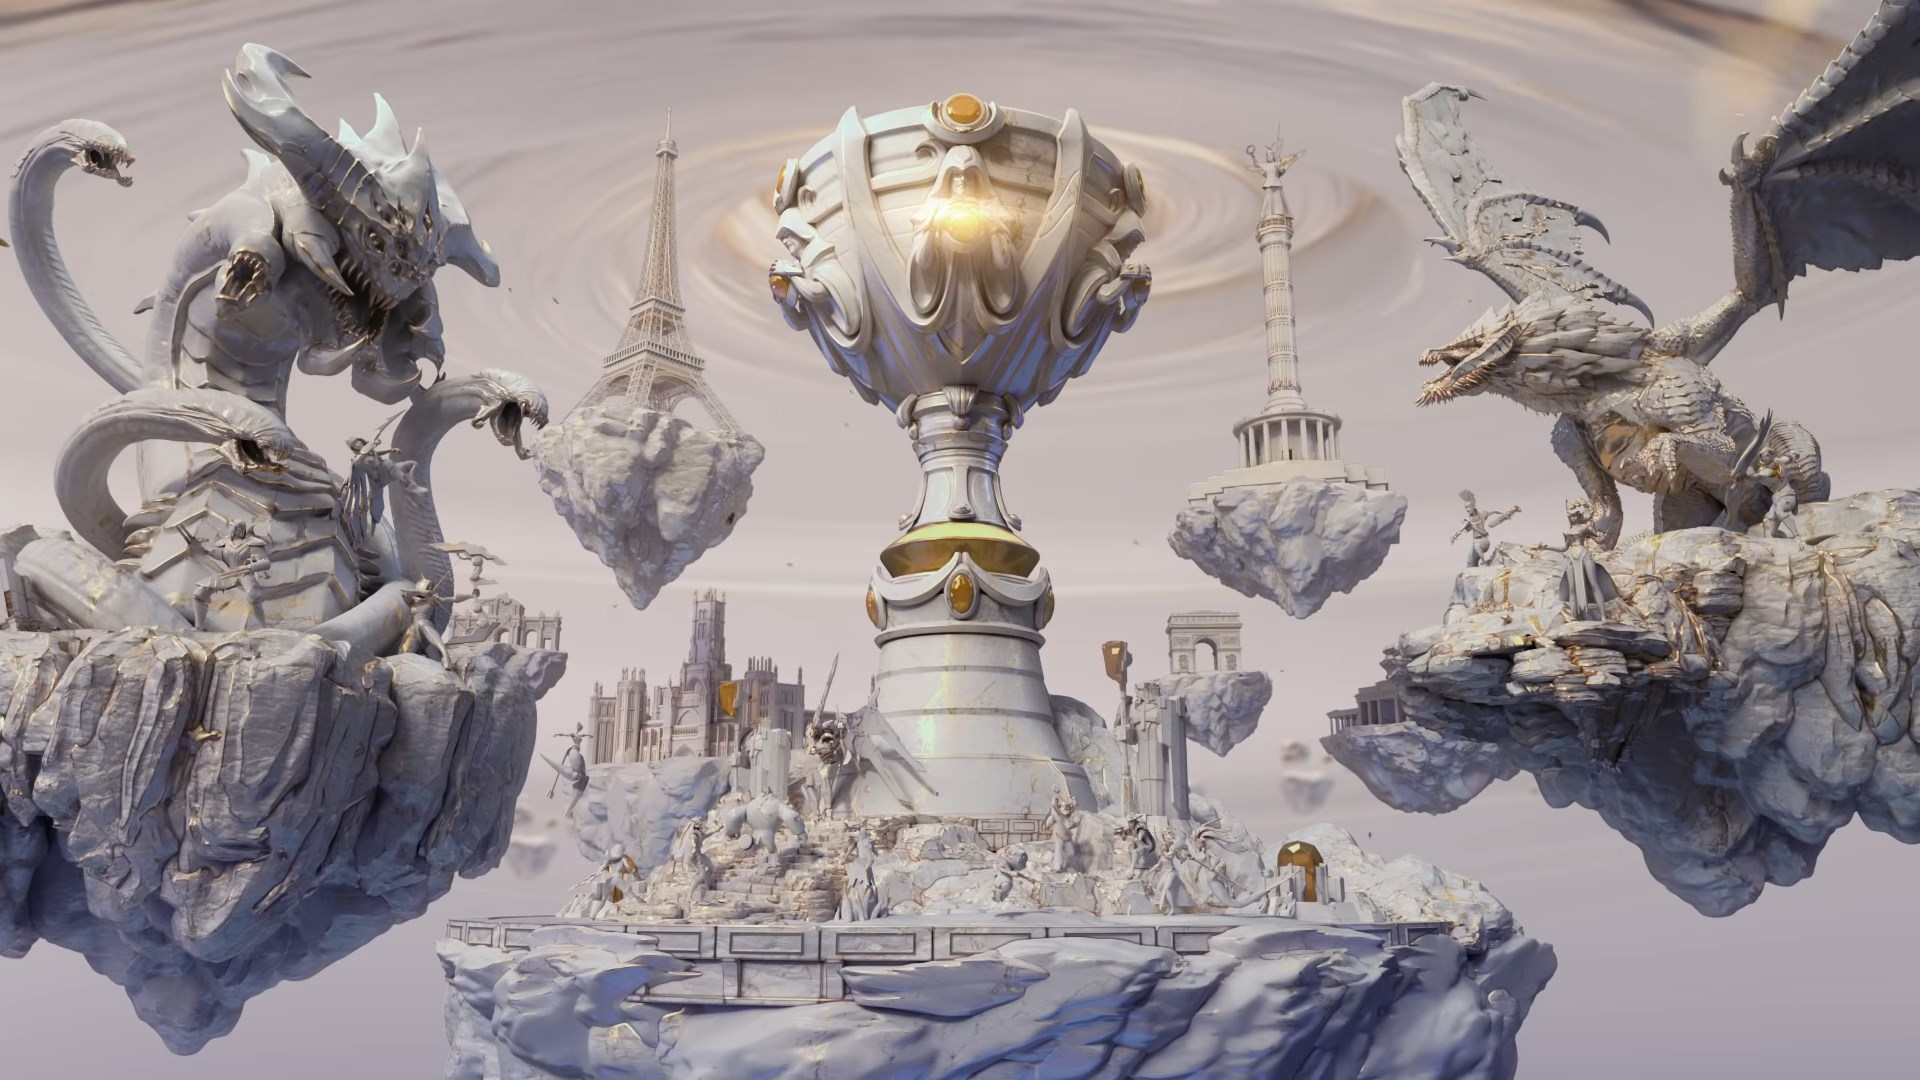 Marble statues of League of Legends champions and monsters surround the Summoner's Cup